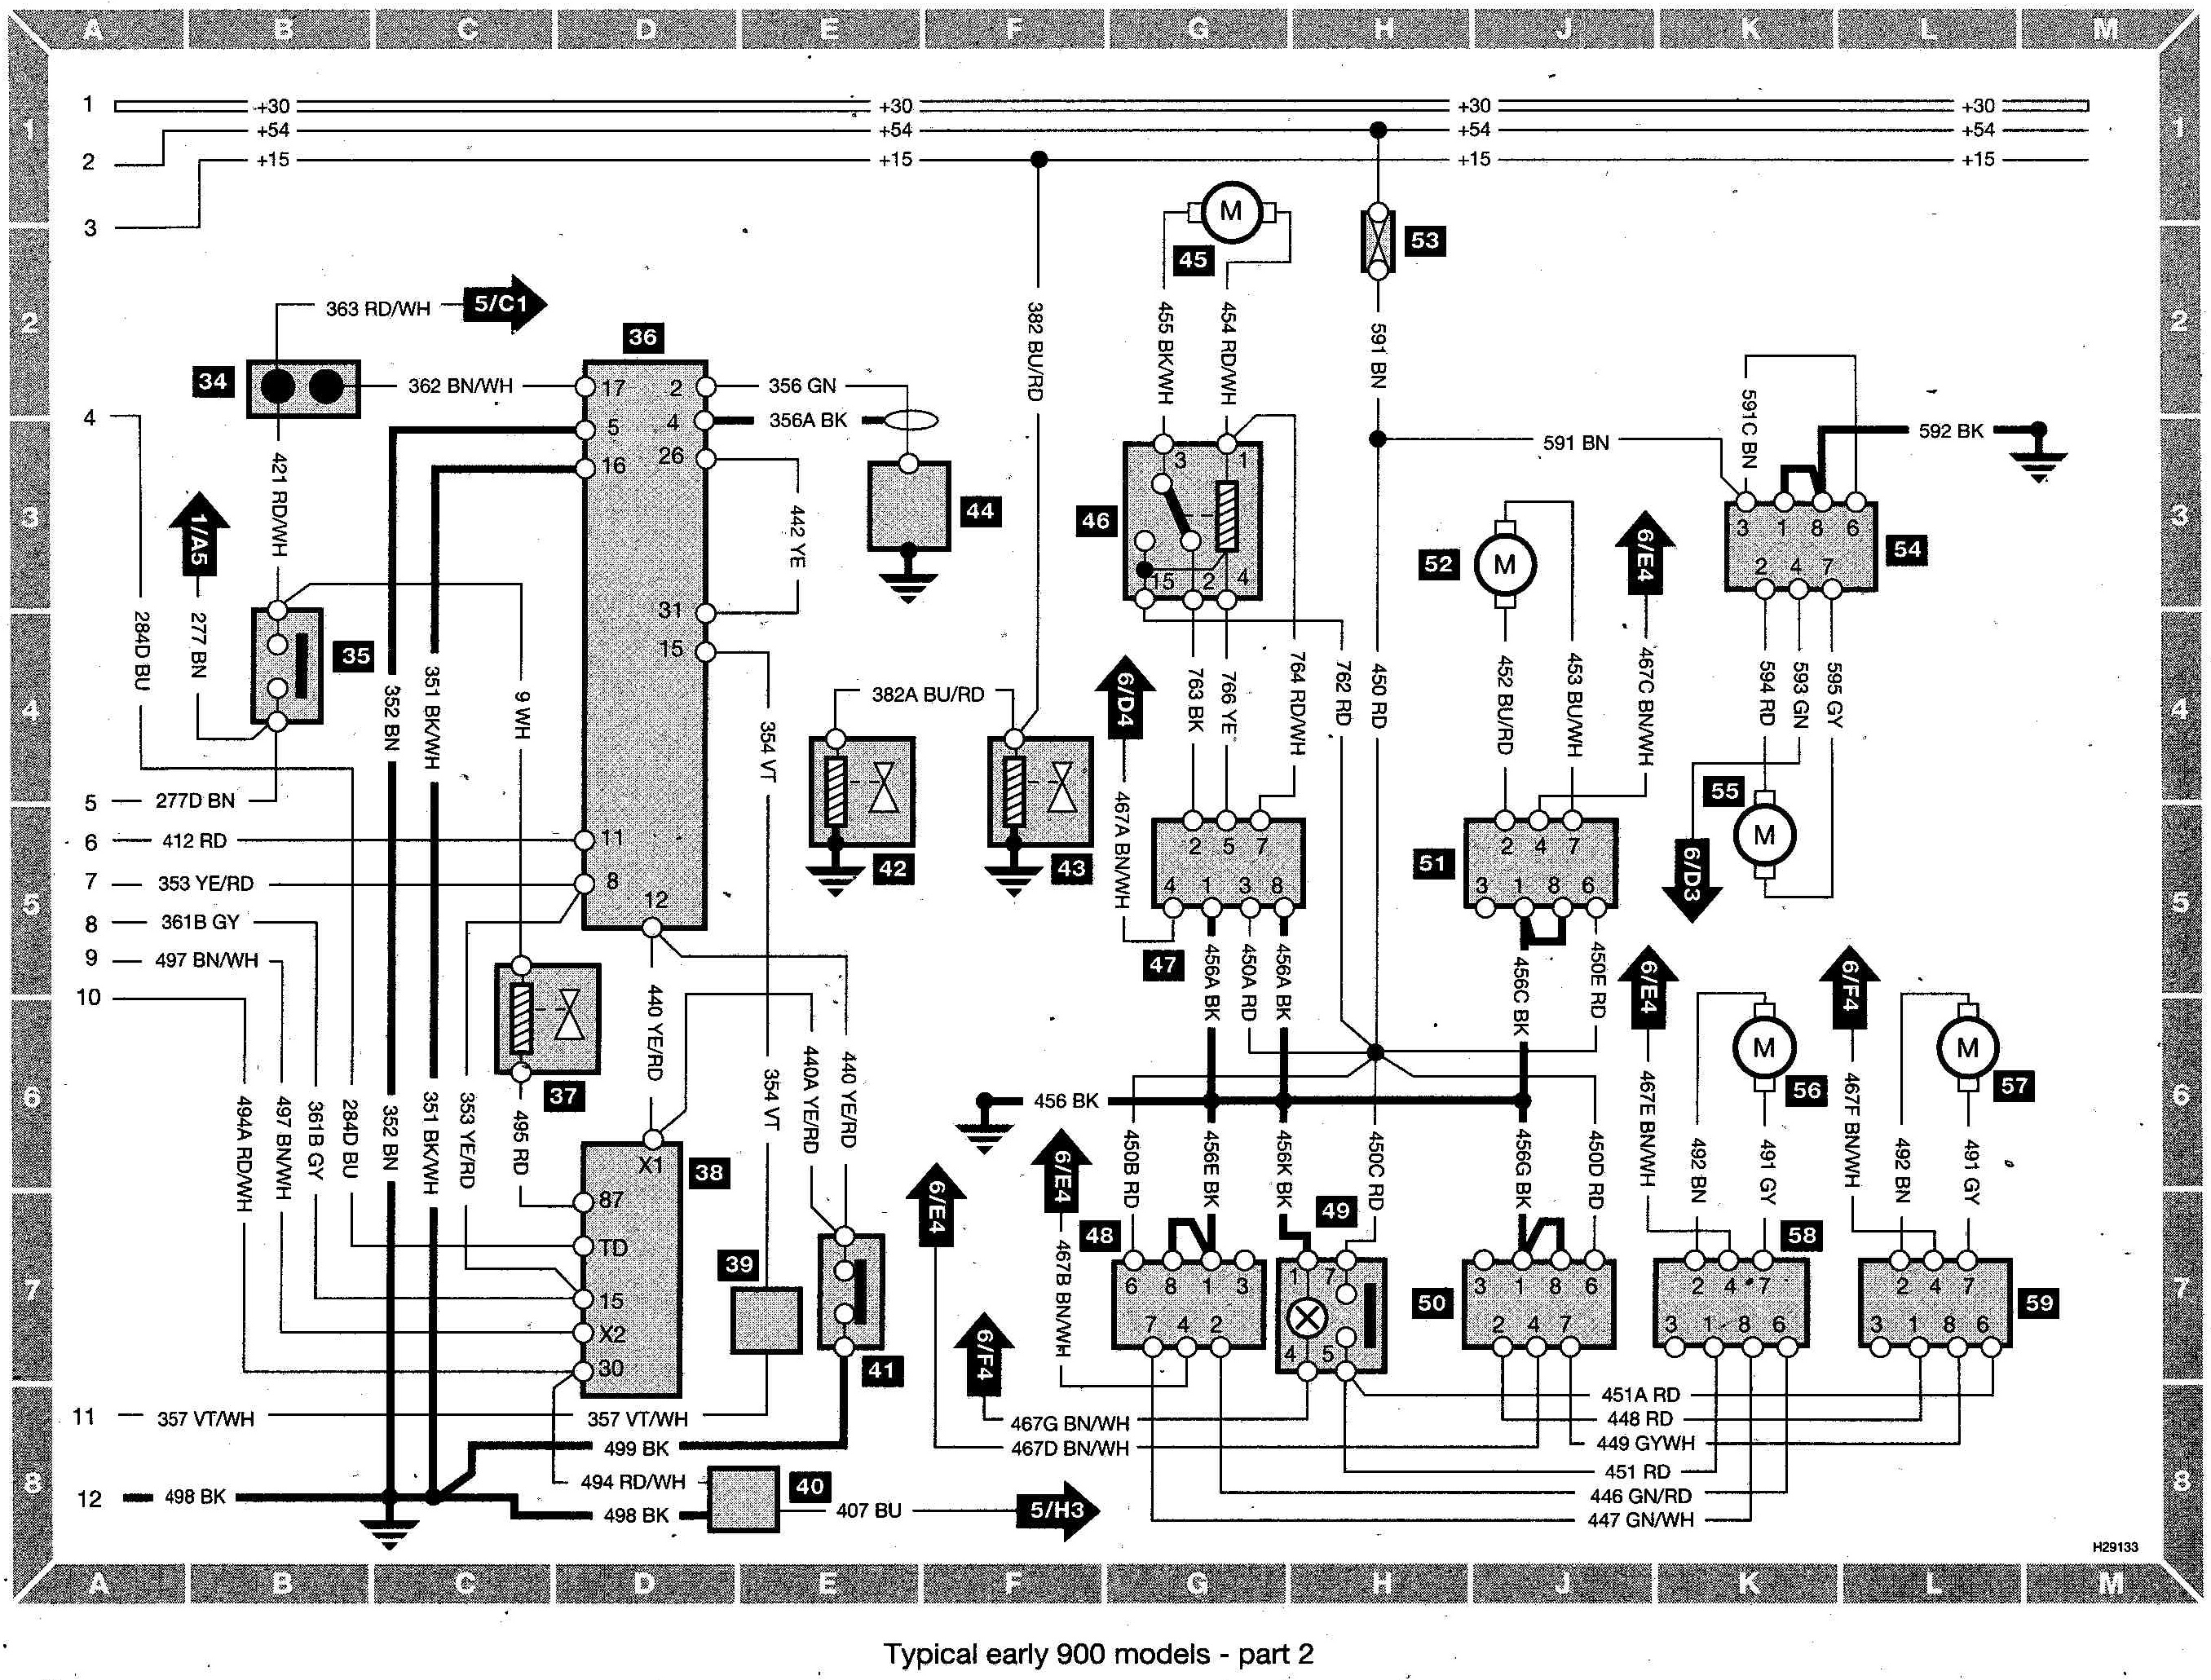 Saab 900 Wiring diagram (early models) part 2?resized665%2C505 2005 saab radio wiring diagram efcaviation com 2006 saab 93 wiring diagram at soozxer.org